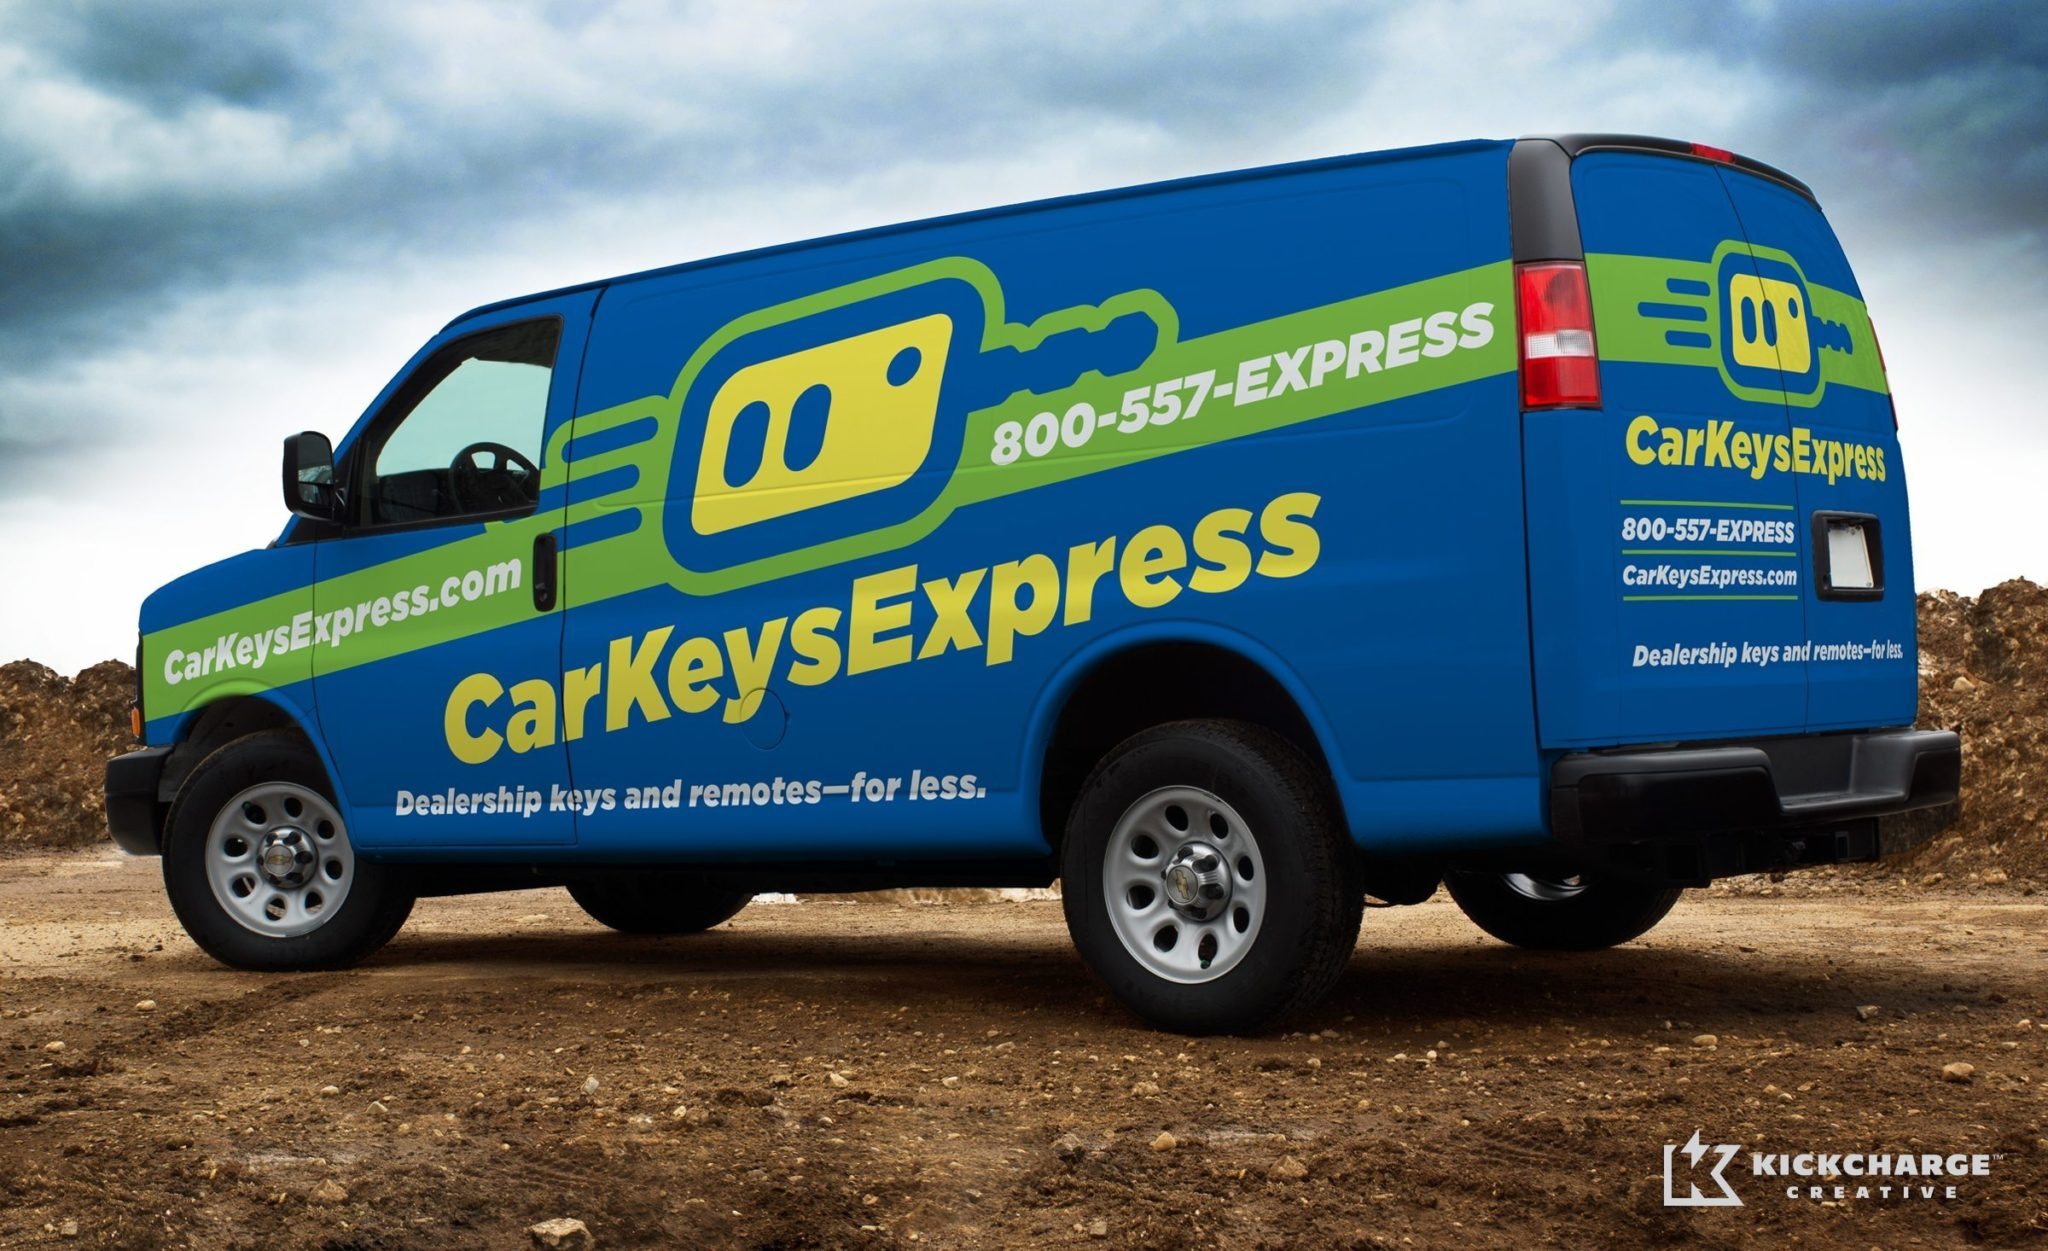 Truck wrap for a key duplication service located in Louisville, KY.